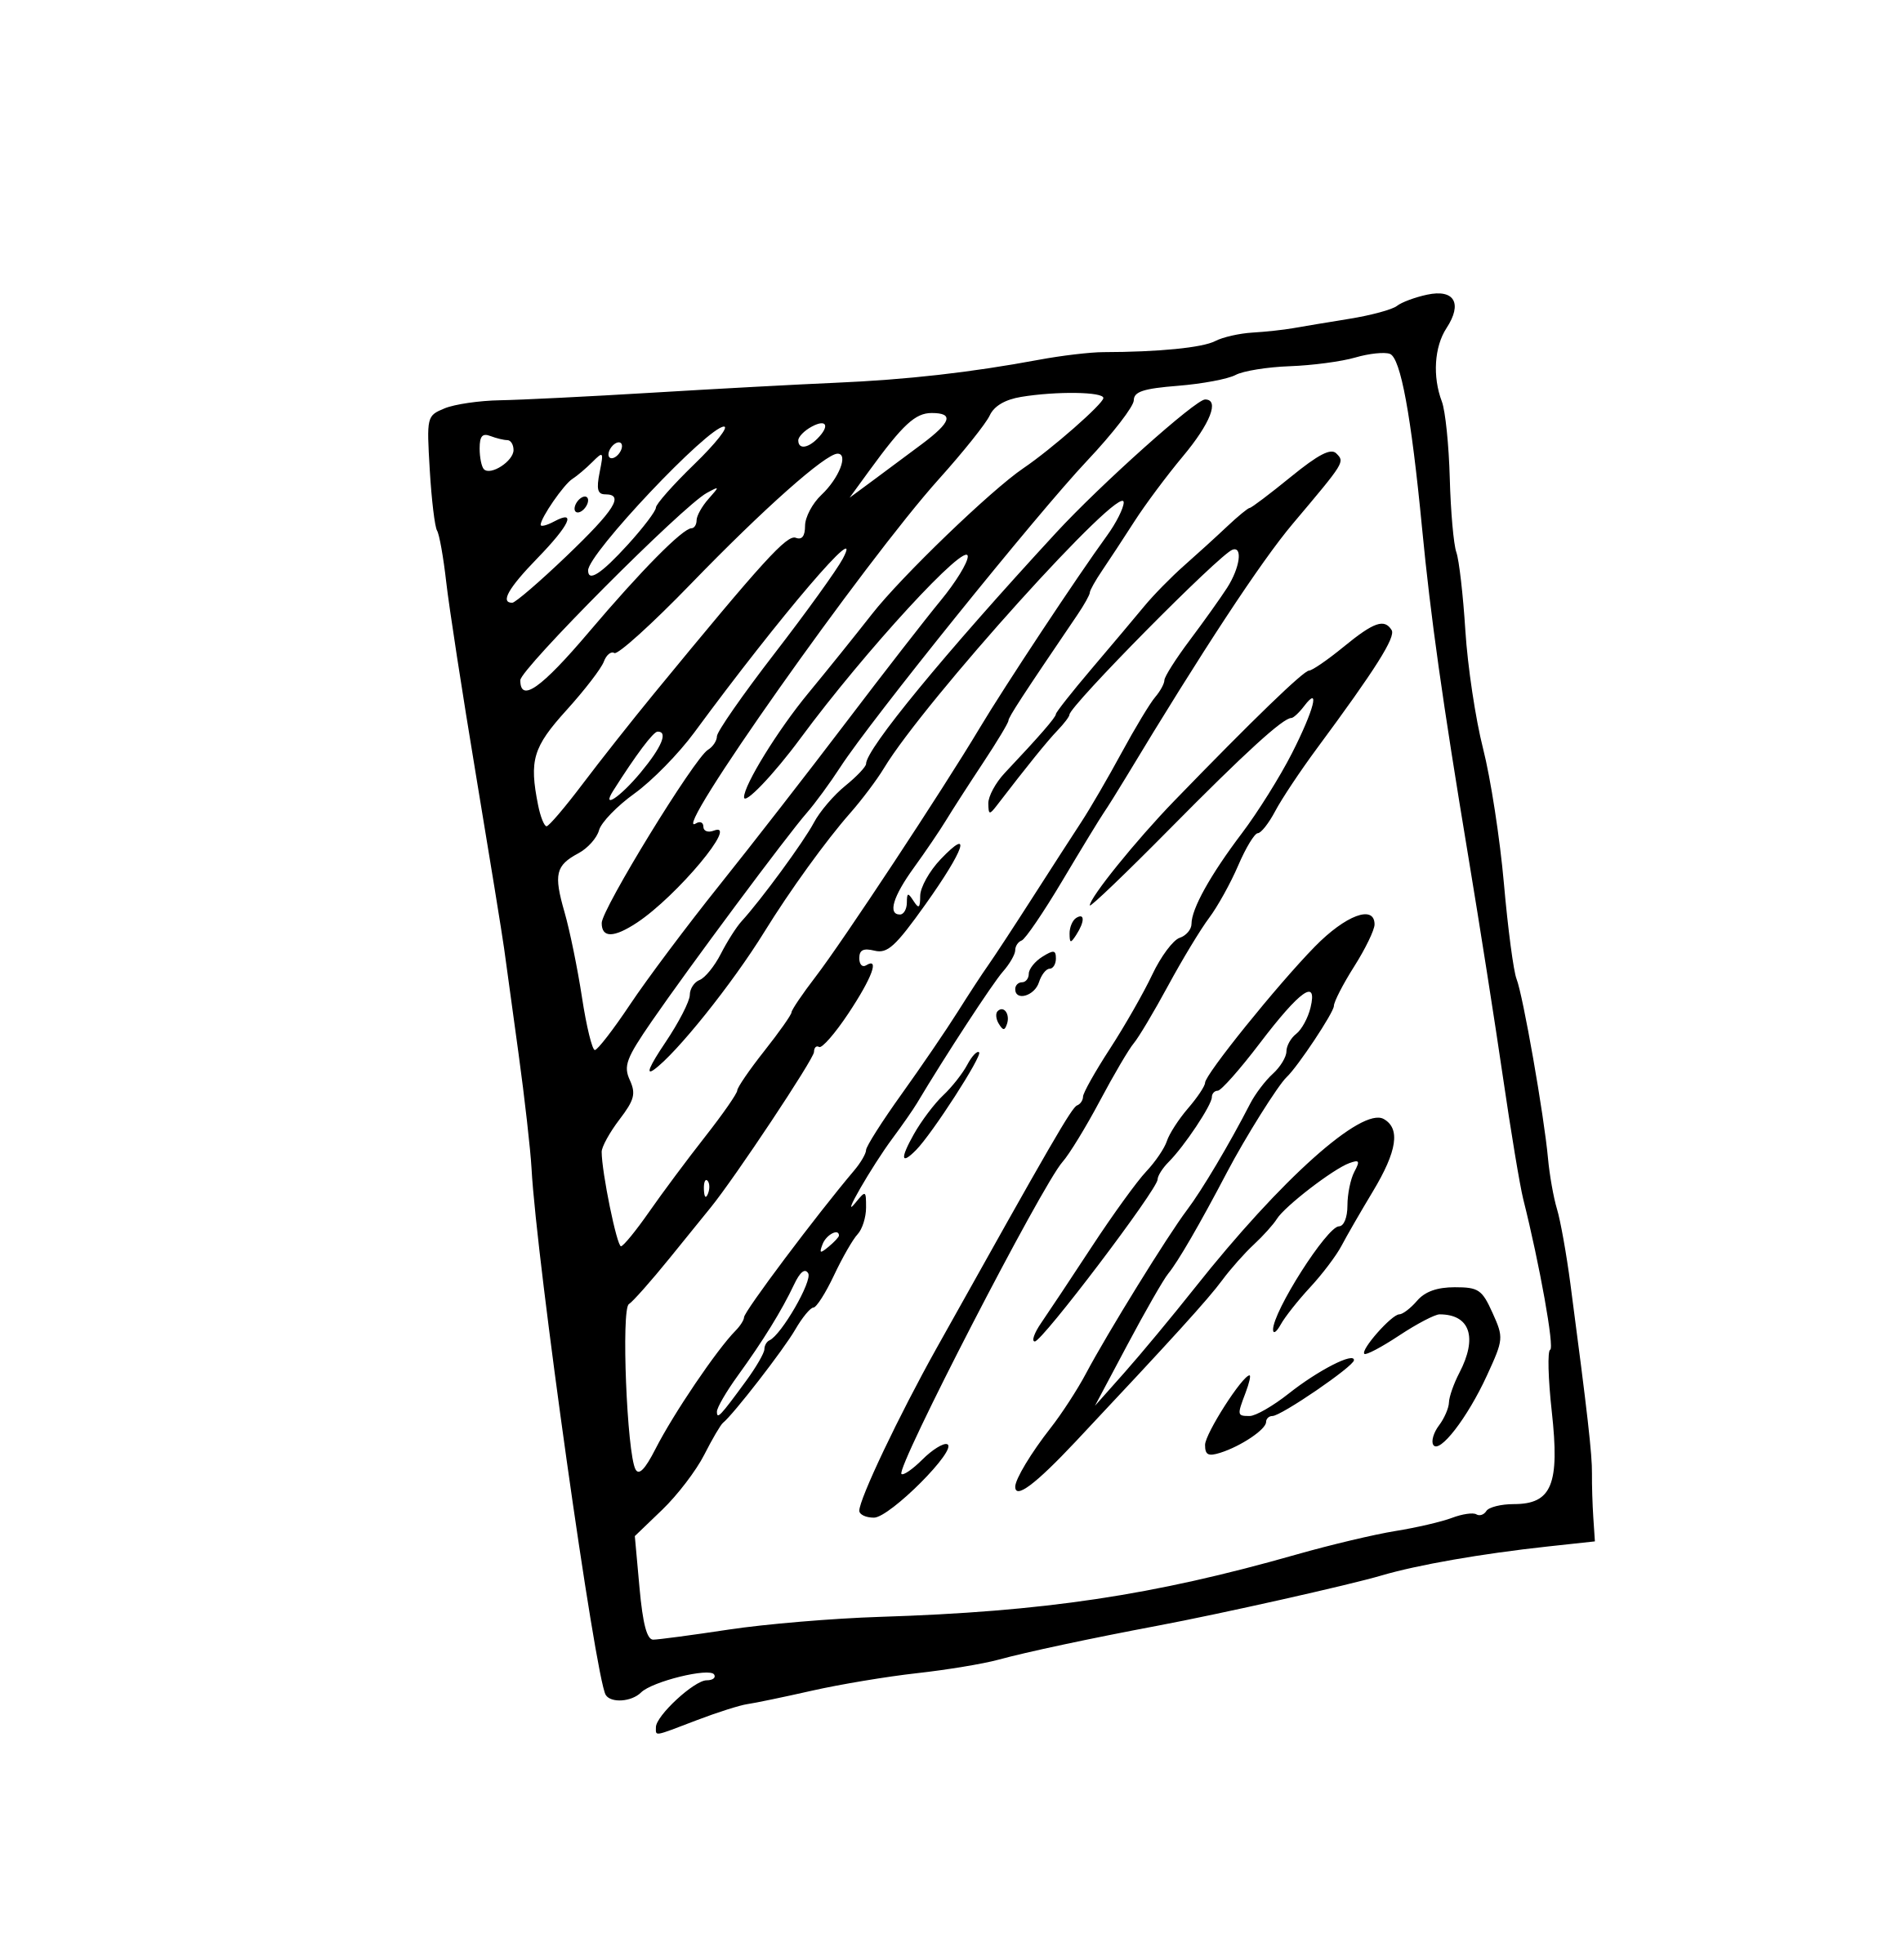 Messy Papers Clipart 20 Free Cliparts